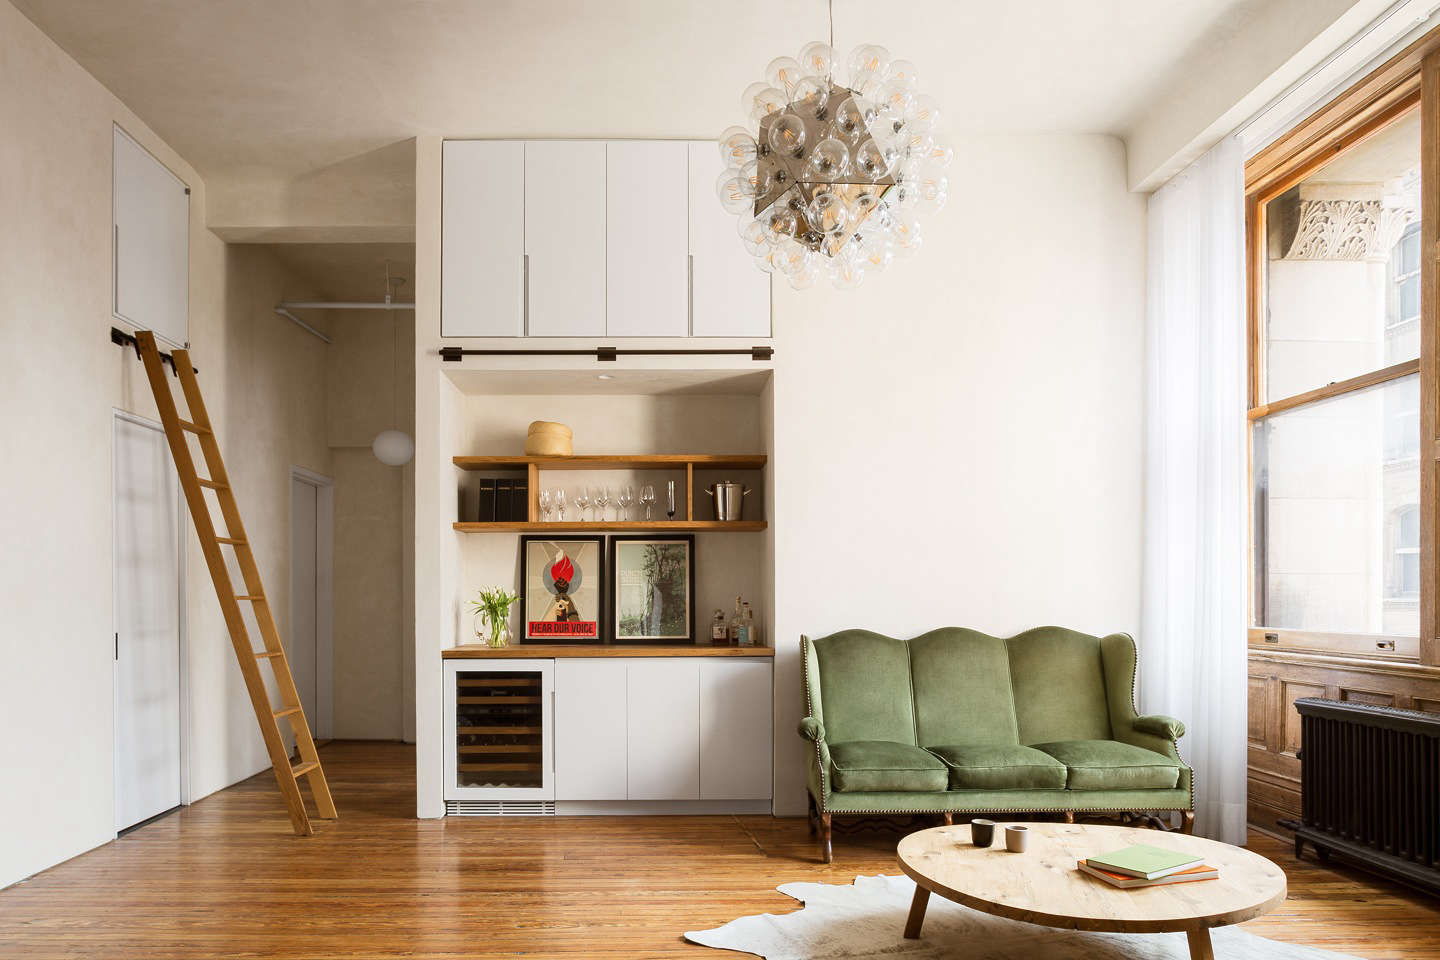 Gramercy Park apartment remodel with wood floors and storage space